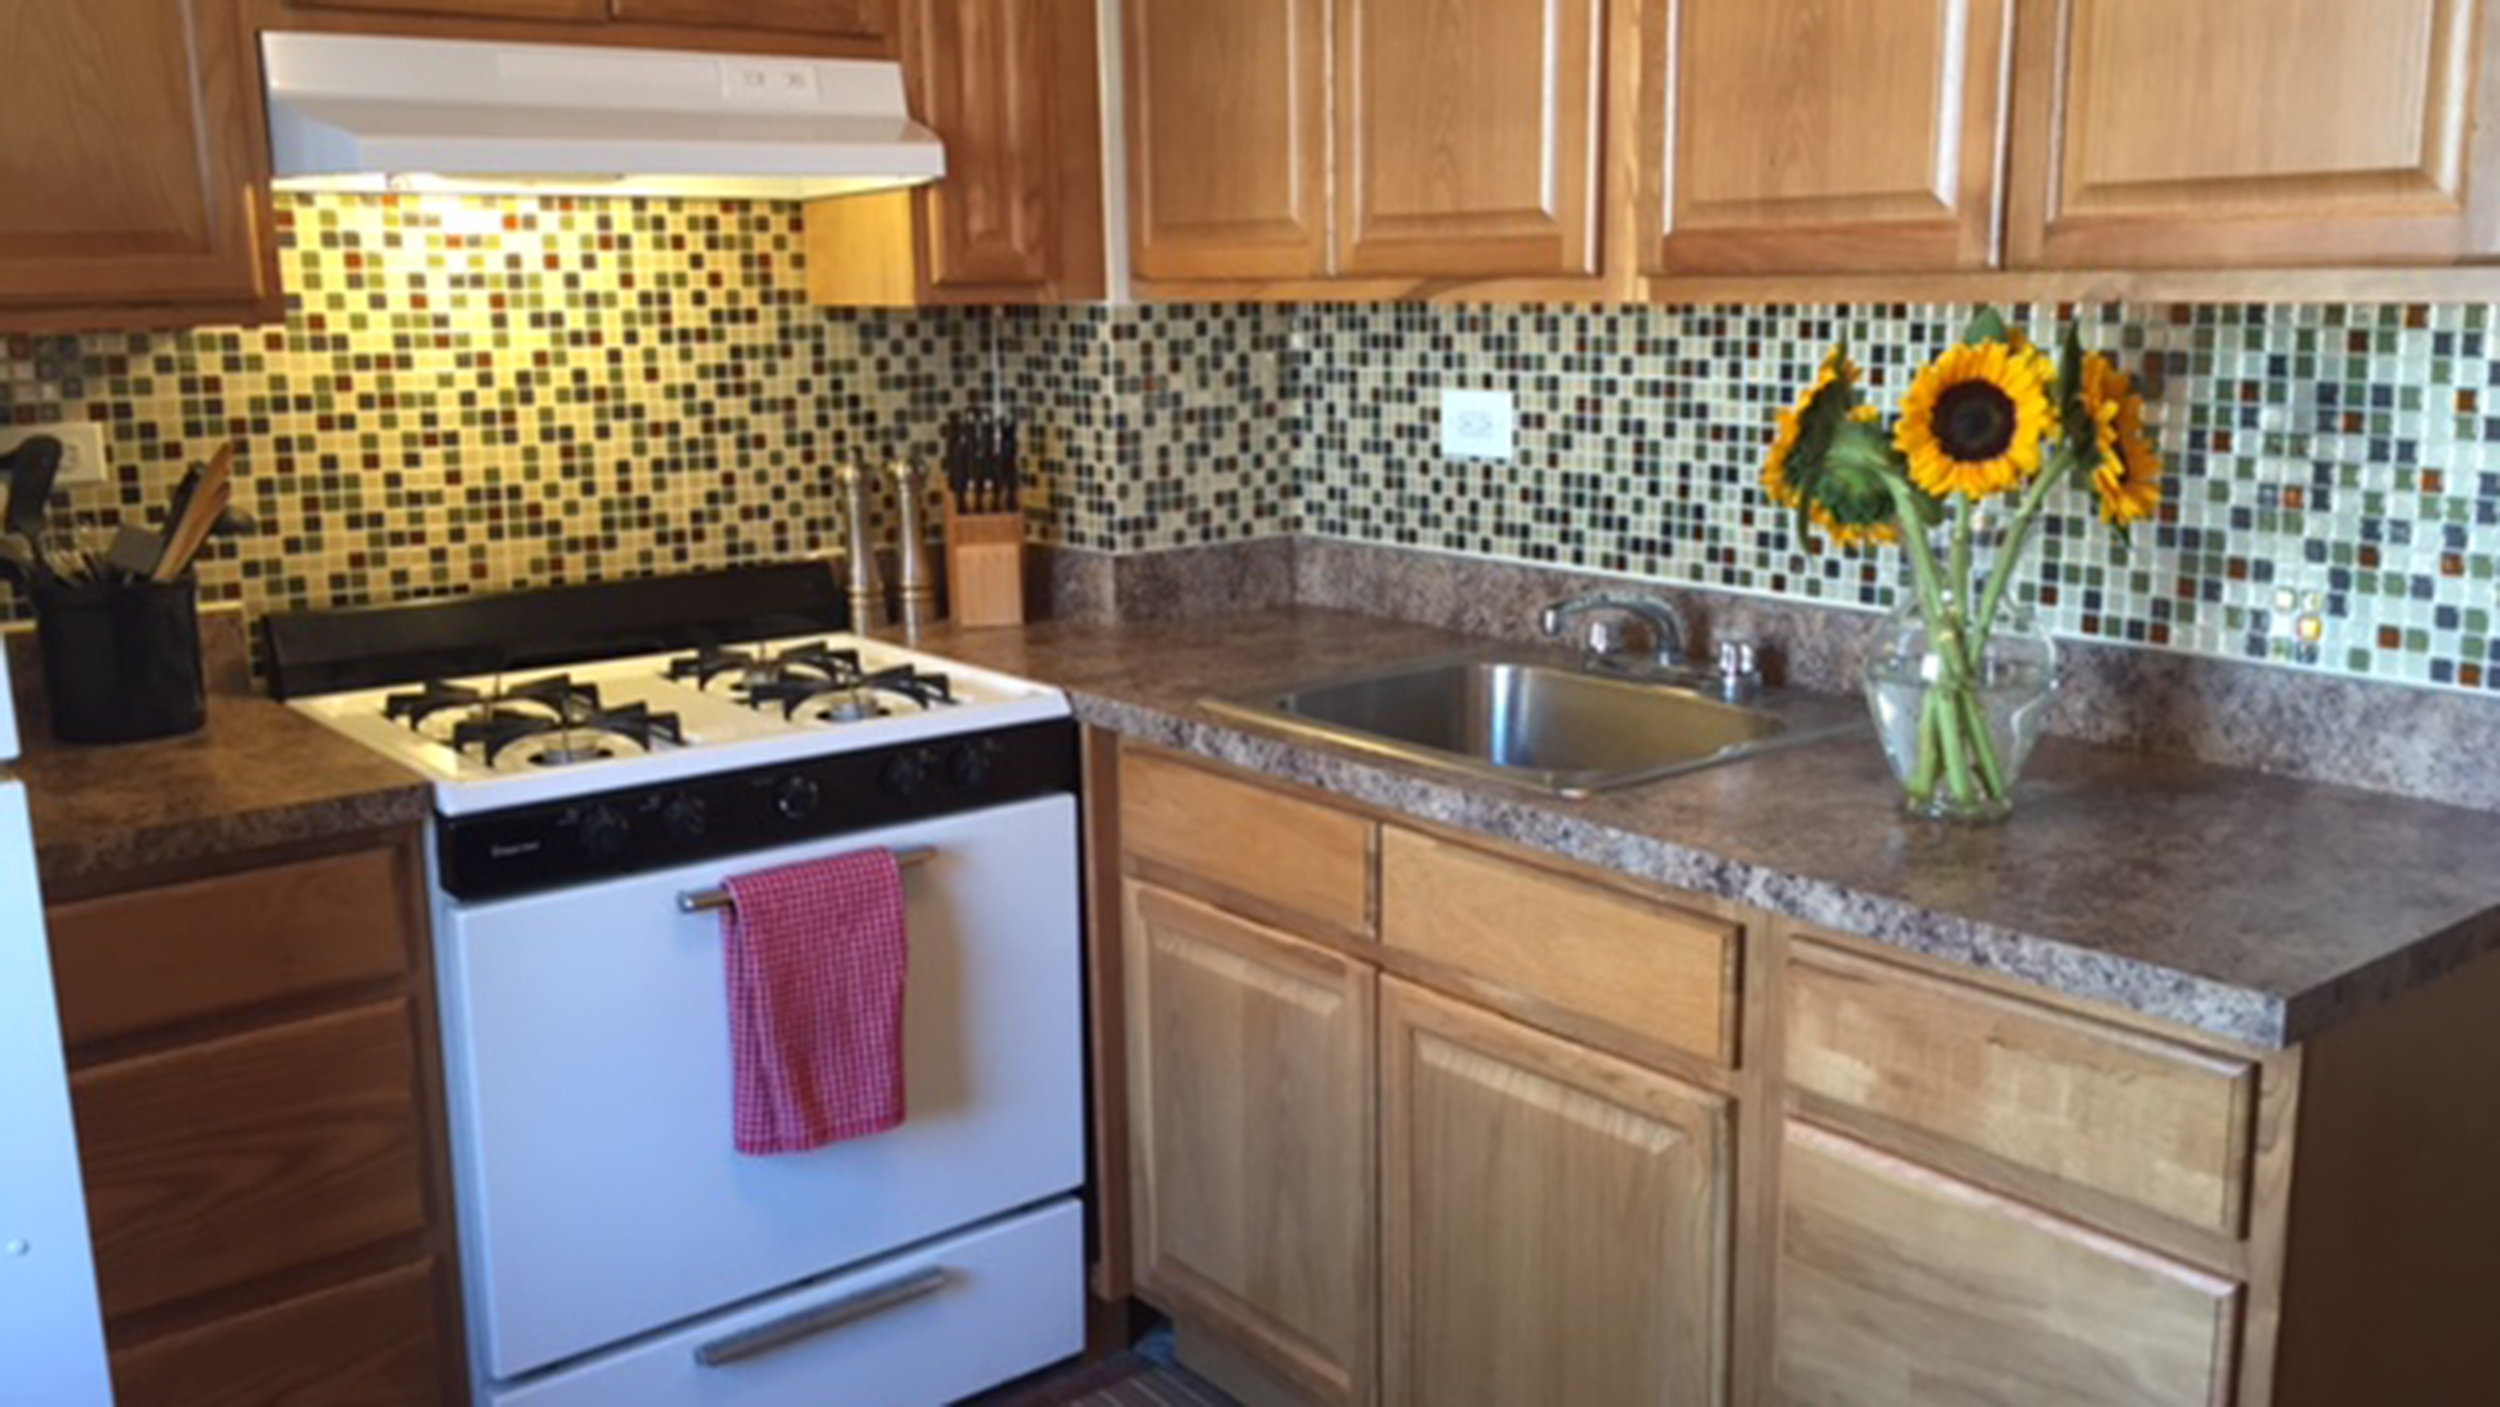 Today Tests Temporary Backsplash Tiles From Smart Tiles Tiling Kitchen Backsplash | Kitchen Mosaic Tile Backsplash